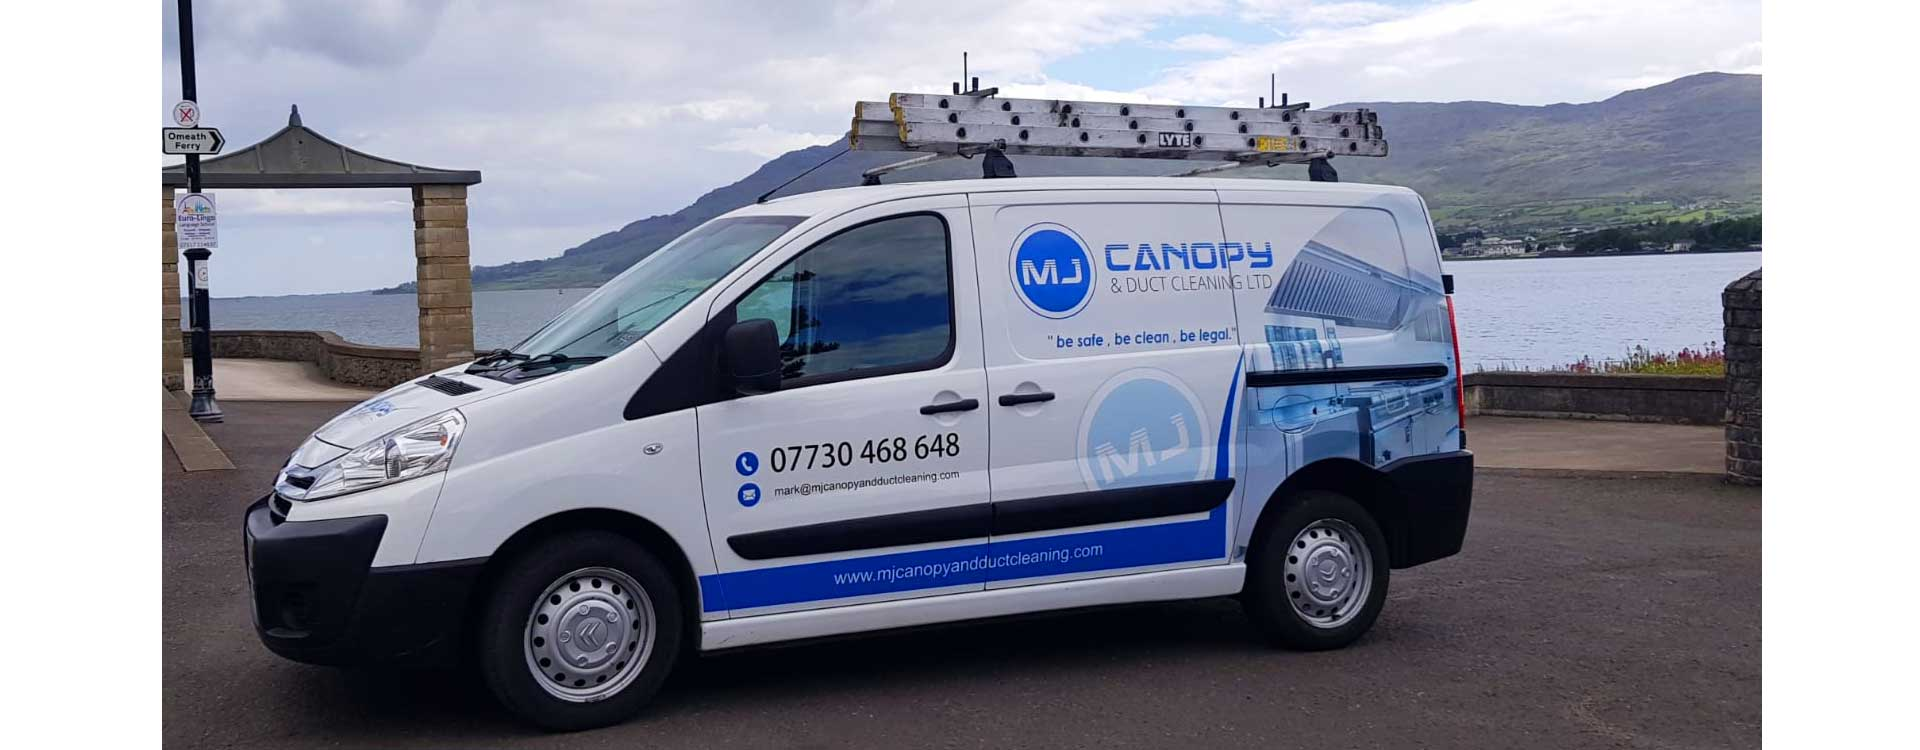 MJ-Canopy-and-Duct-Cleaning-Canopy-Warrenpoint-Newry-Van